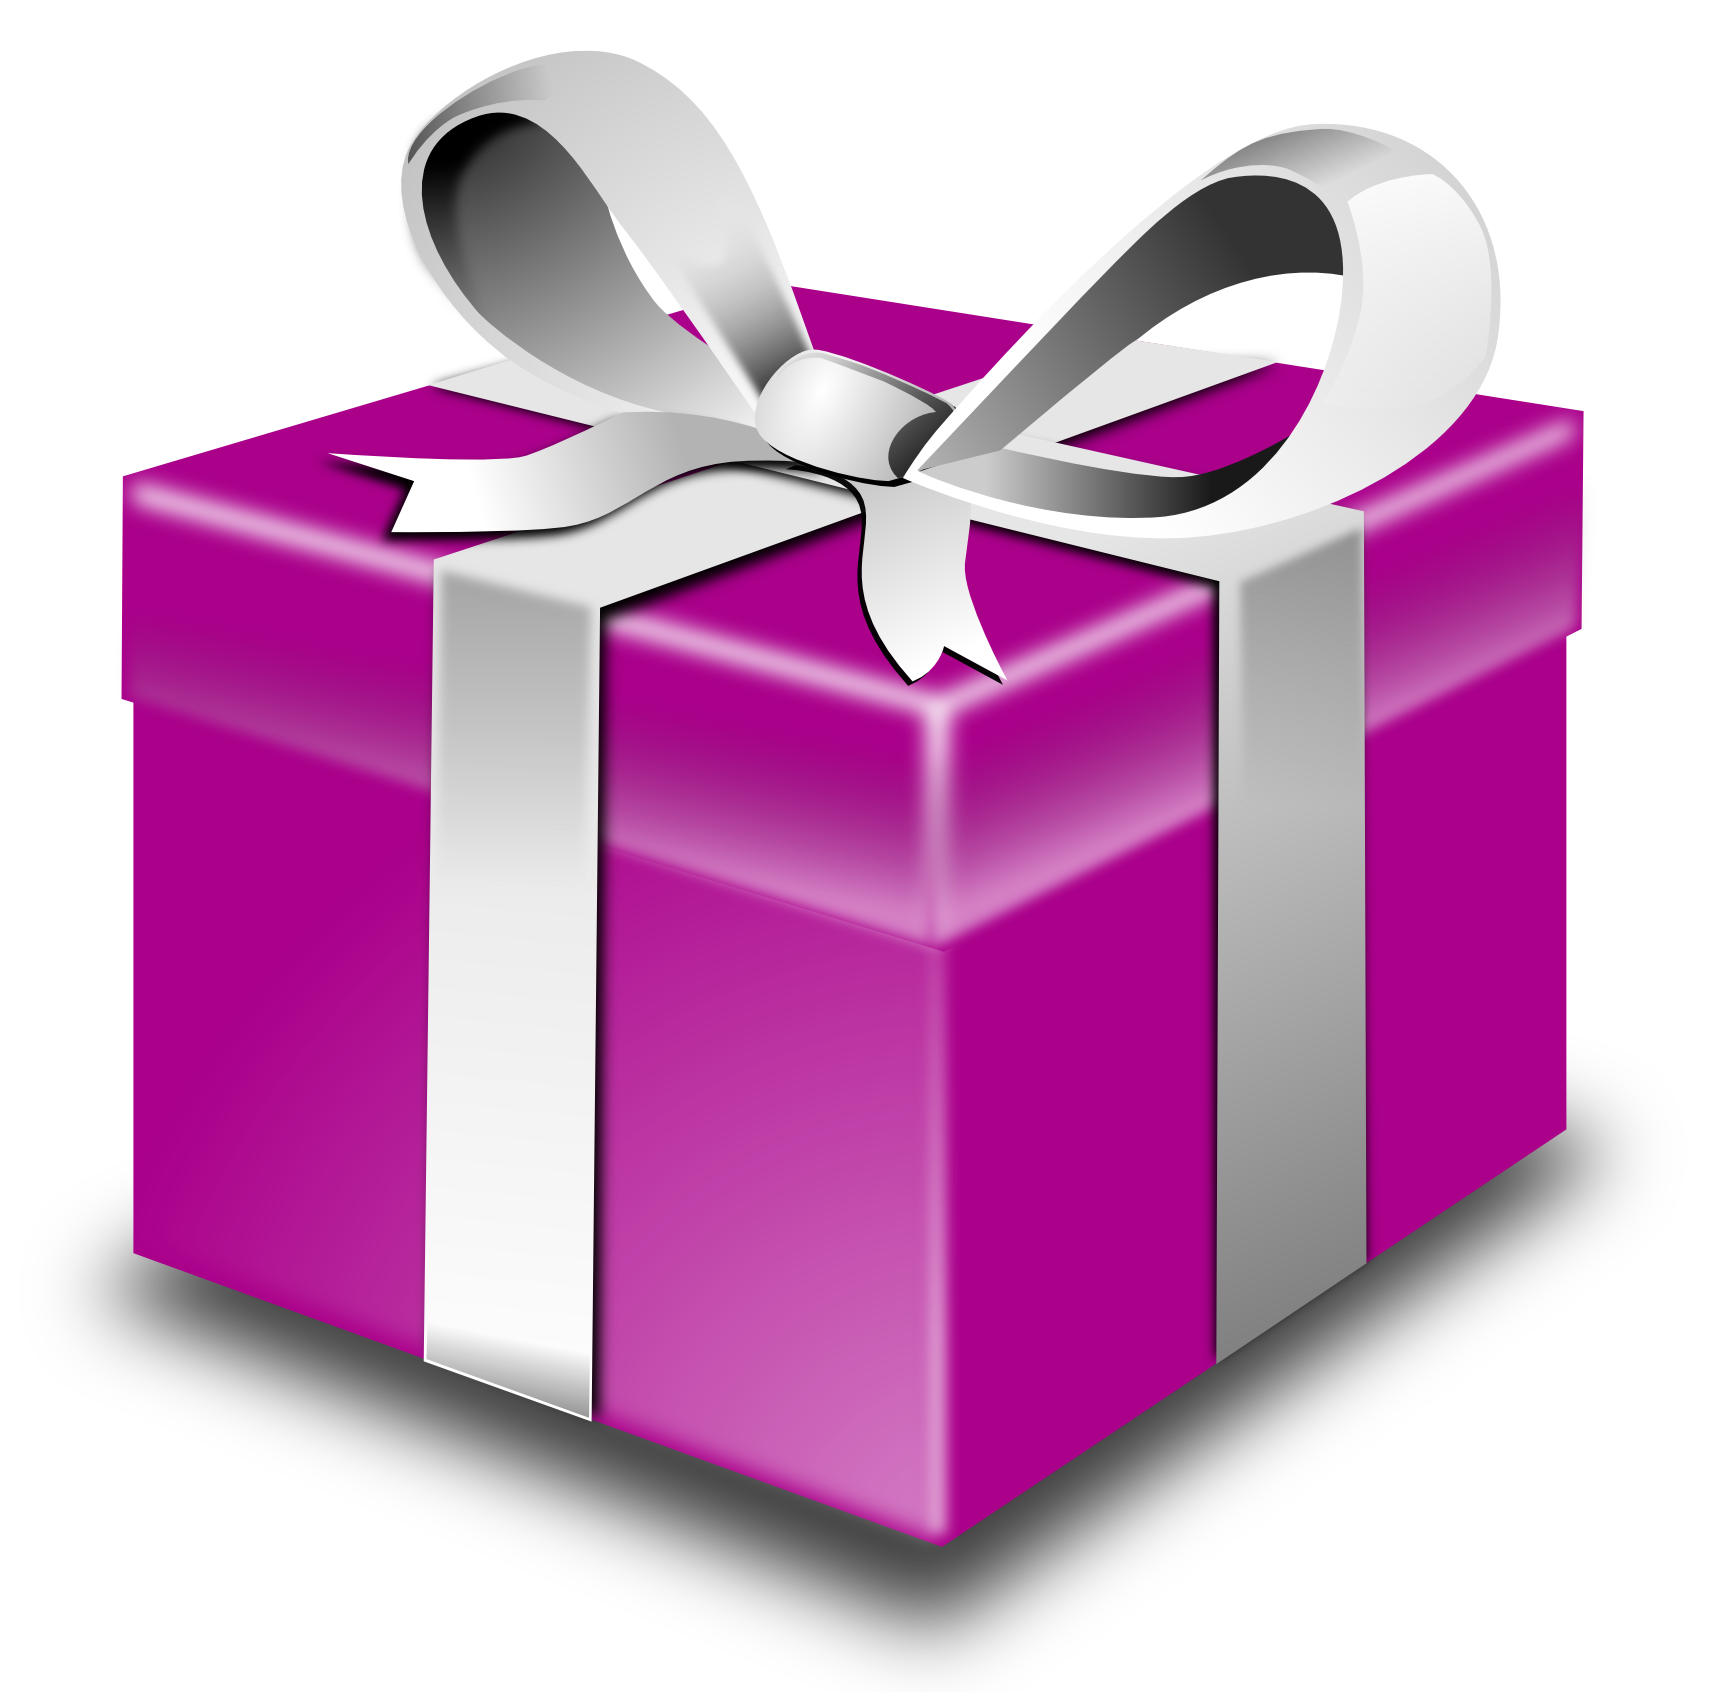 Birthday Gift Vector PNG Transparent Image - Gift PNG